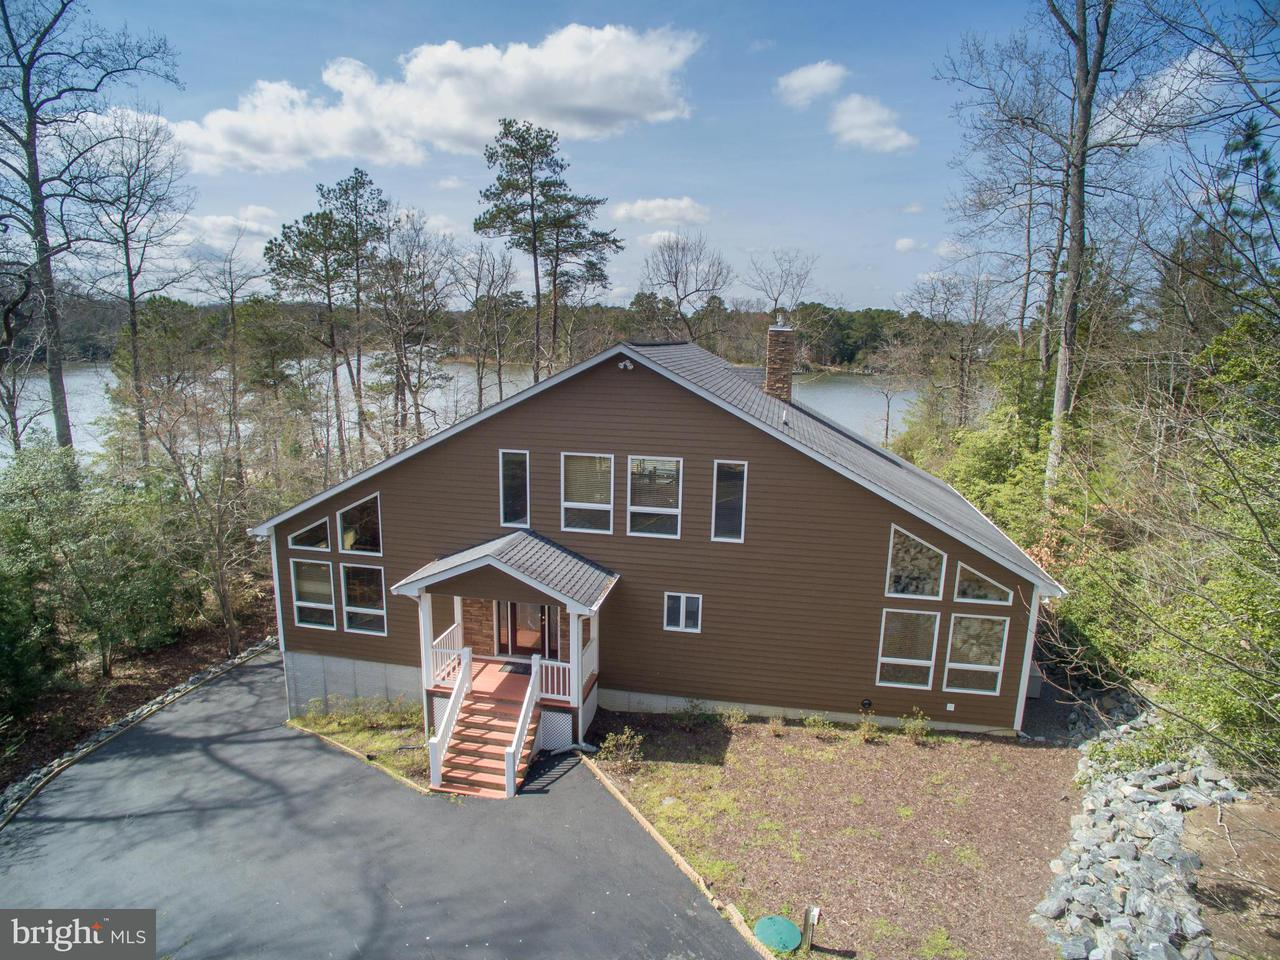 Single Family Home for Sale at 904 Canvasback Lane 904 Canvasback Lane Heathsville, Virginia 22473 United States